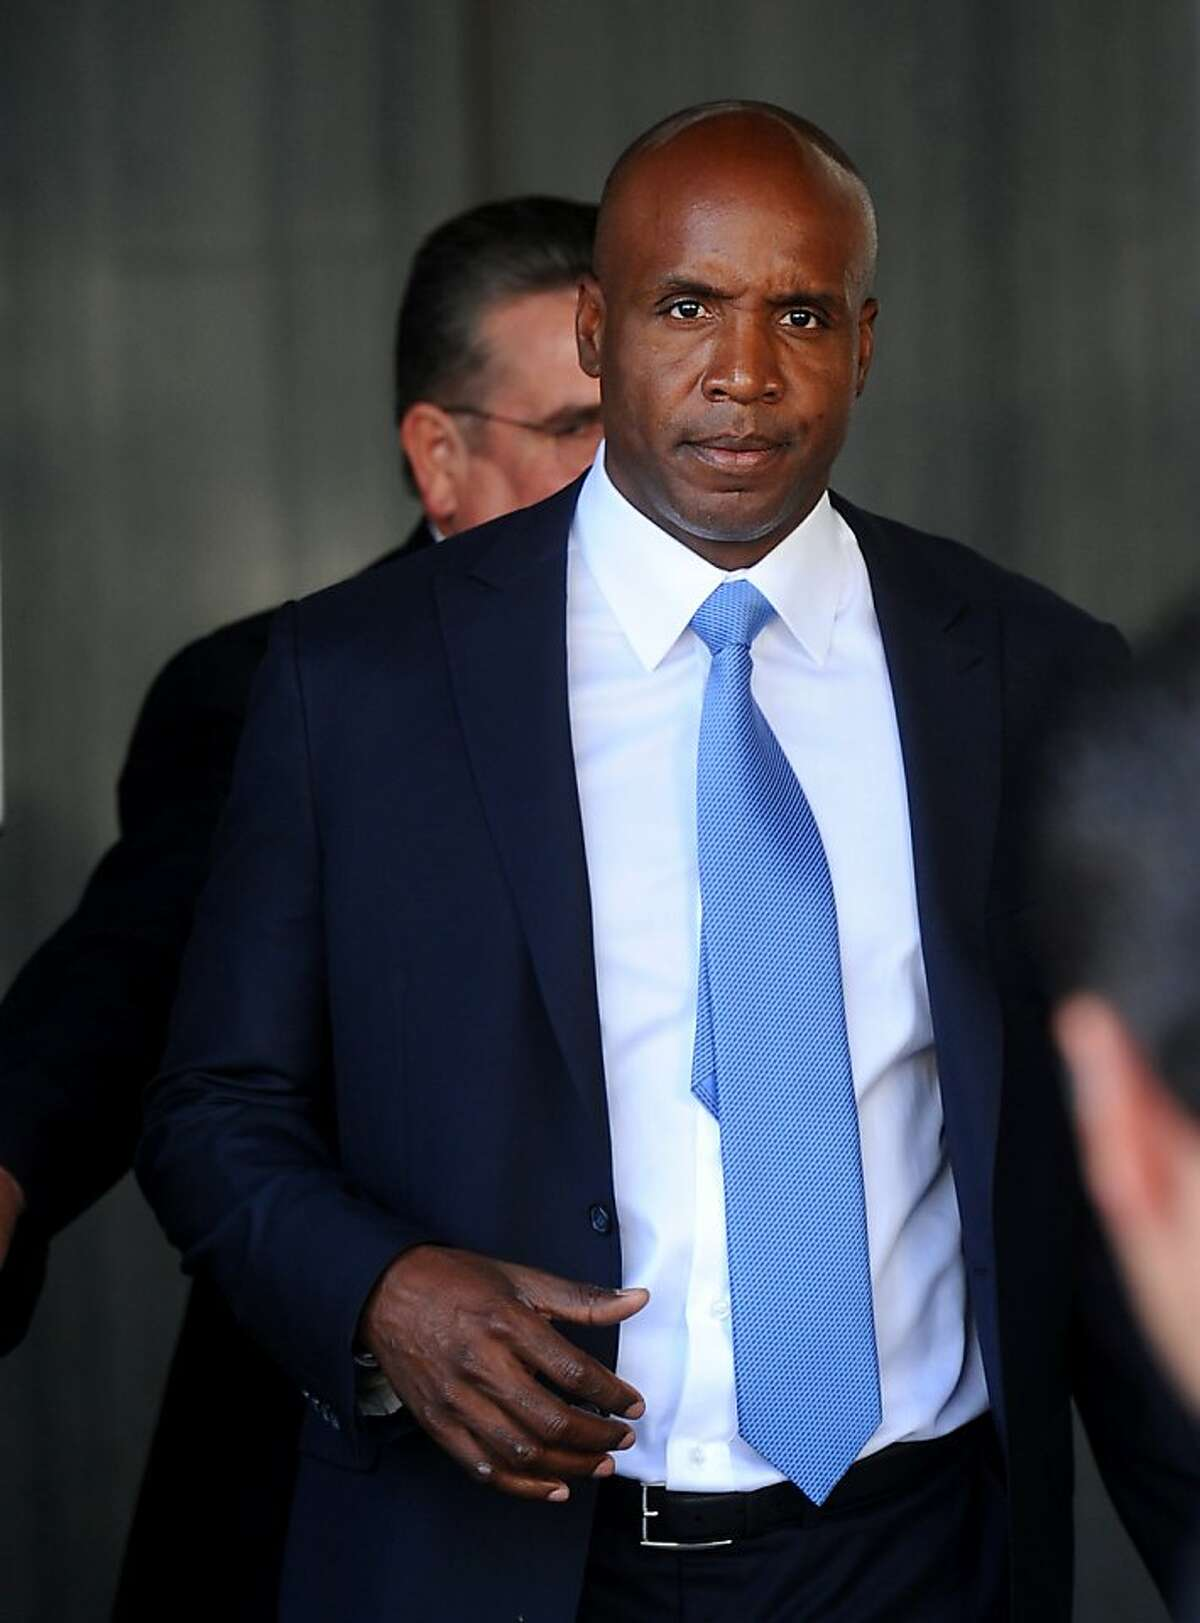 Former Giants slugger Barry Bonds leaves federal court on Thursday, June 23, 2011, in San Francisco. A judge gave the prosecution more time to decide whether to retry Bonds on three perjury counts.